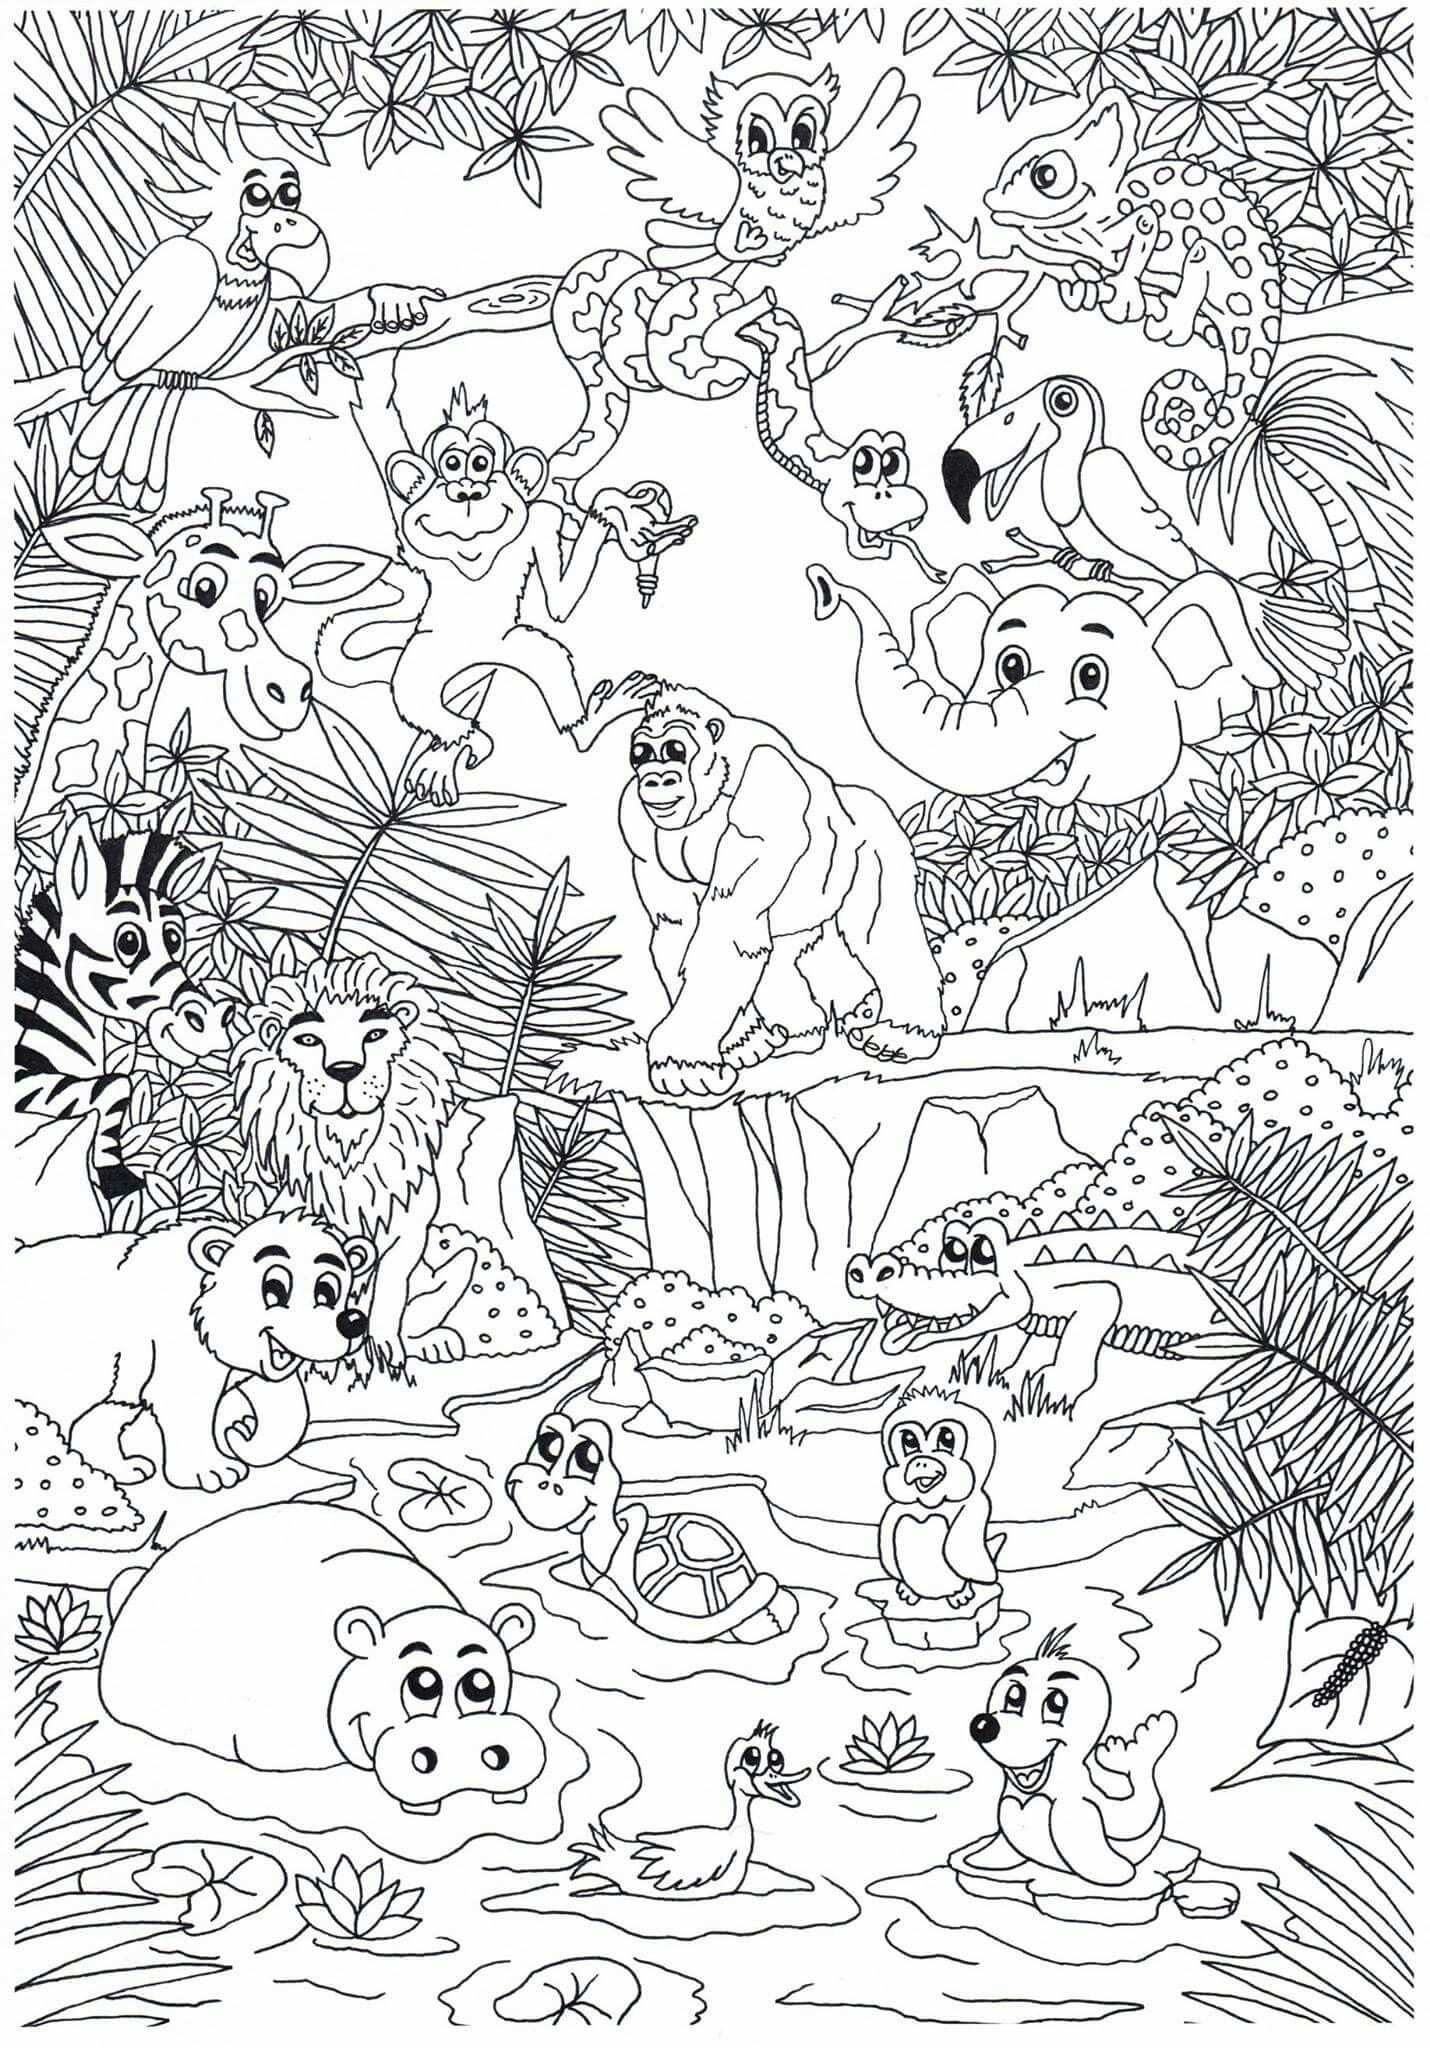 Coloring Animals In The Zoo In 2020 With Images Zoo Coloring